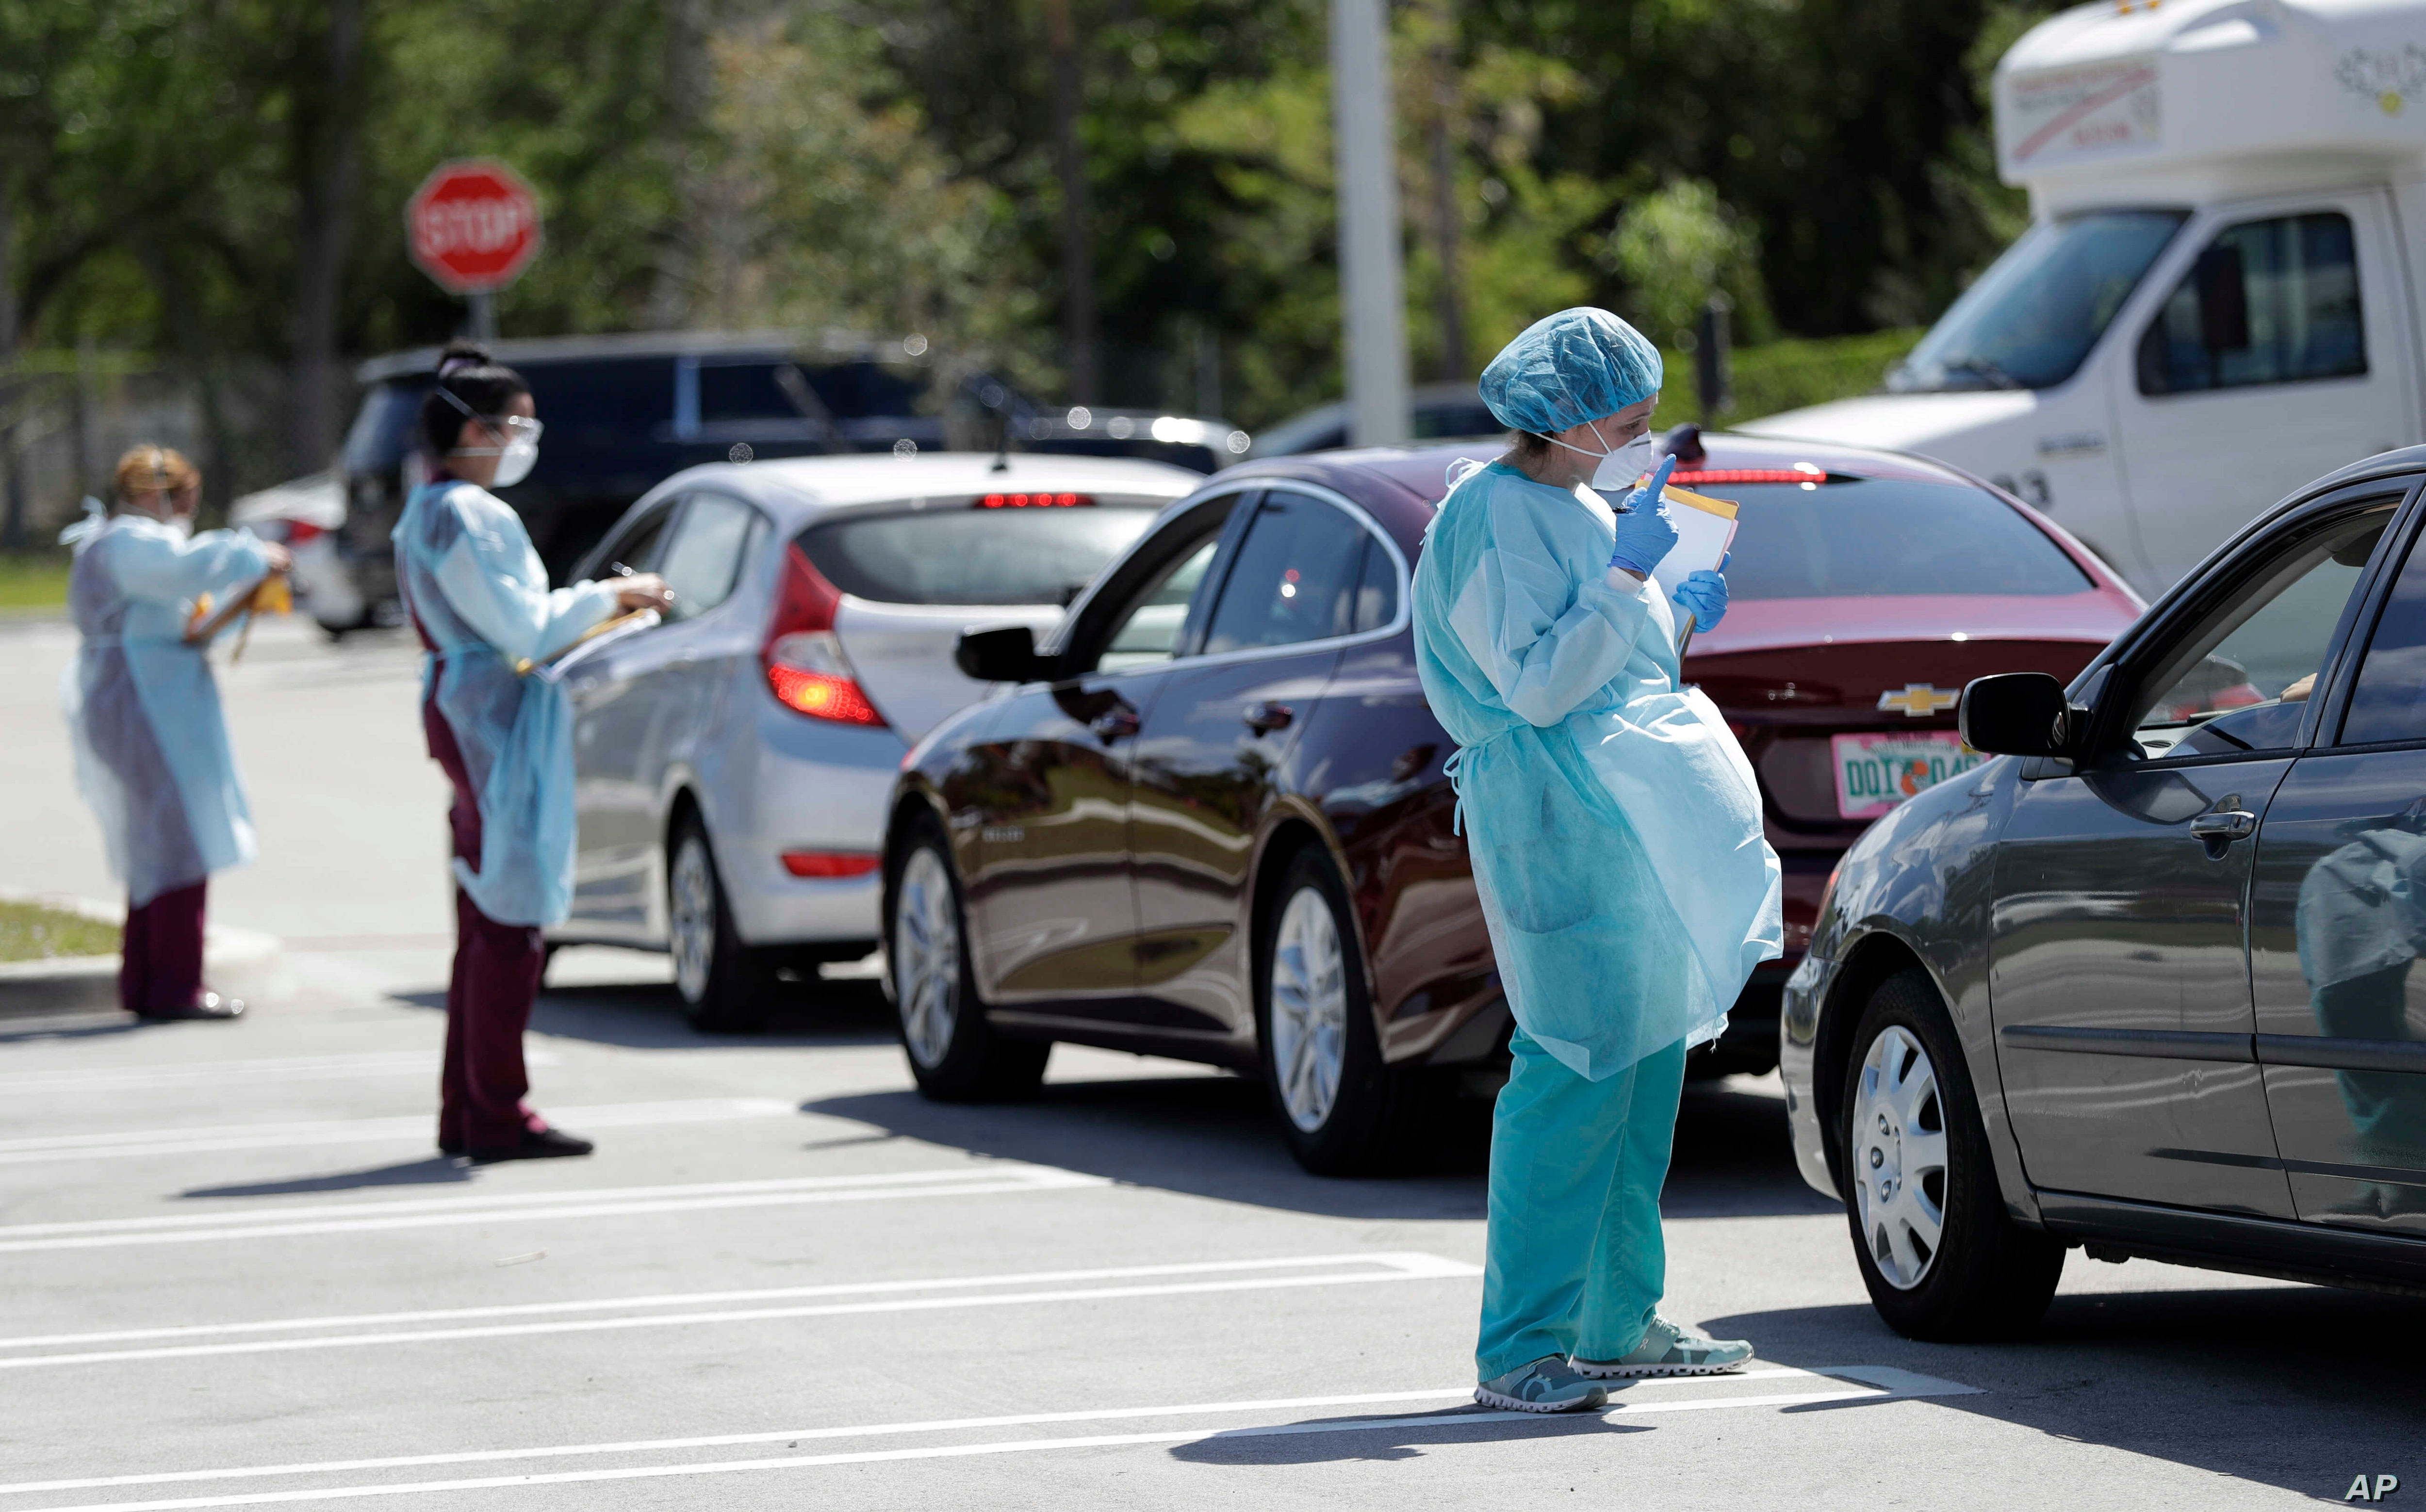 Chaos Inconsistency Mark Launch Of Drive Thru Virus Testing Voice Of America English